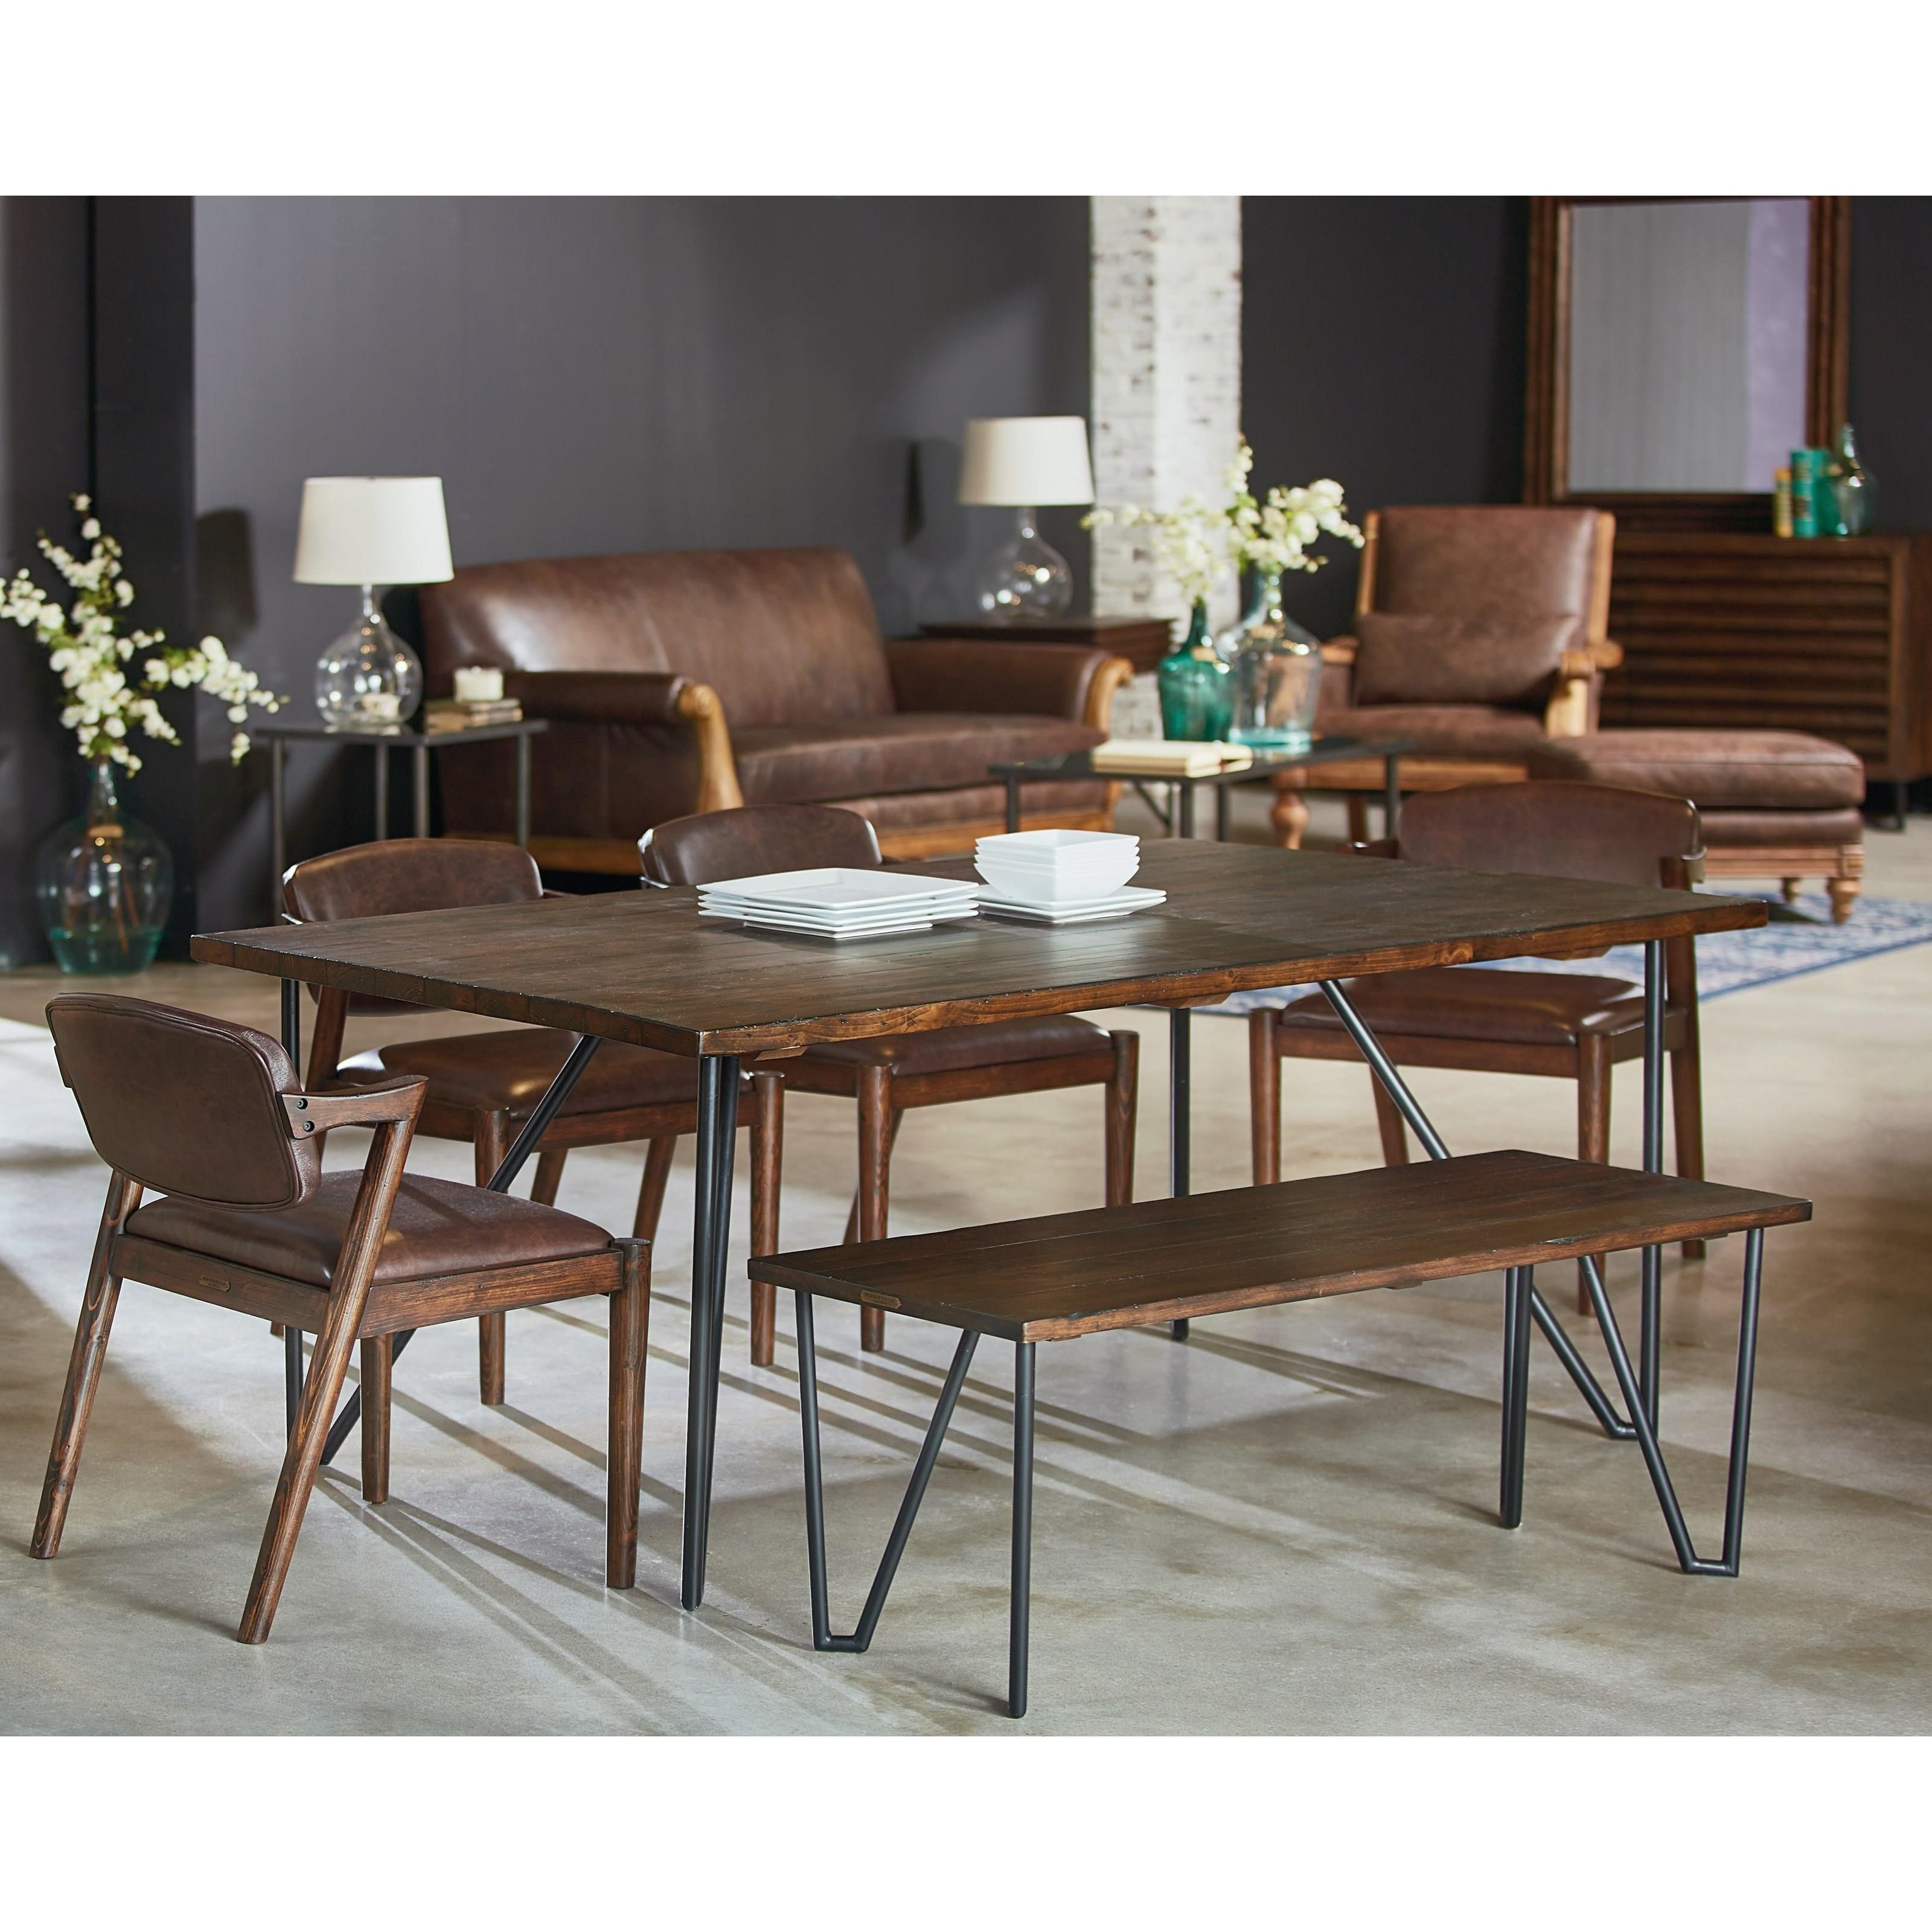 6 39 hairpin dining table with metal hairpin legs by for Dining room tables legs